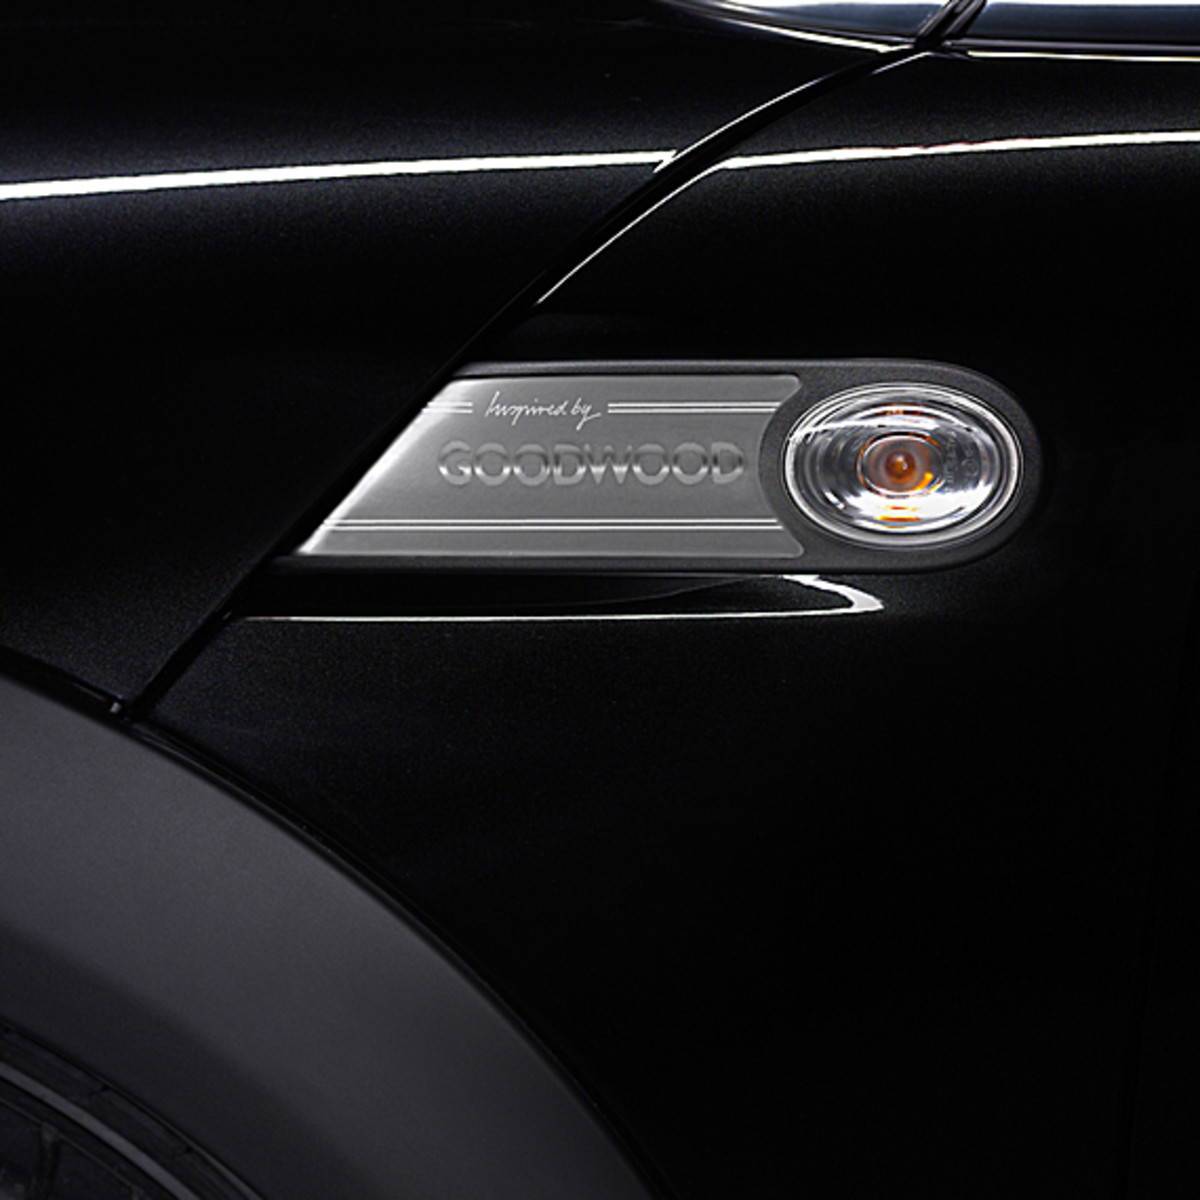 mini-inspired-by-goodwood-concept-car-05